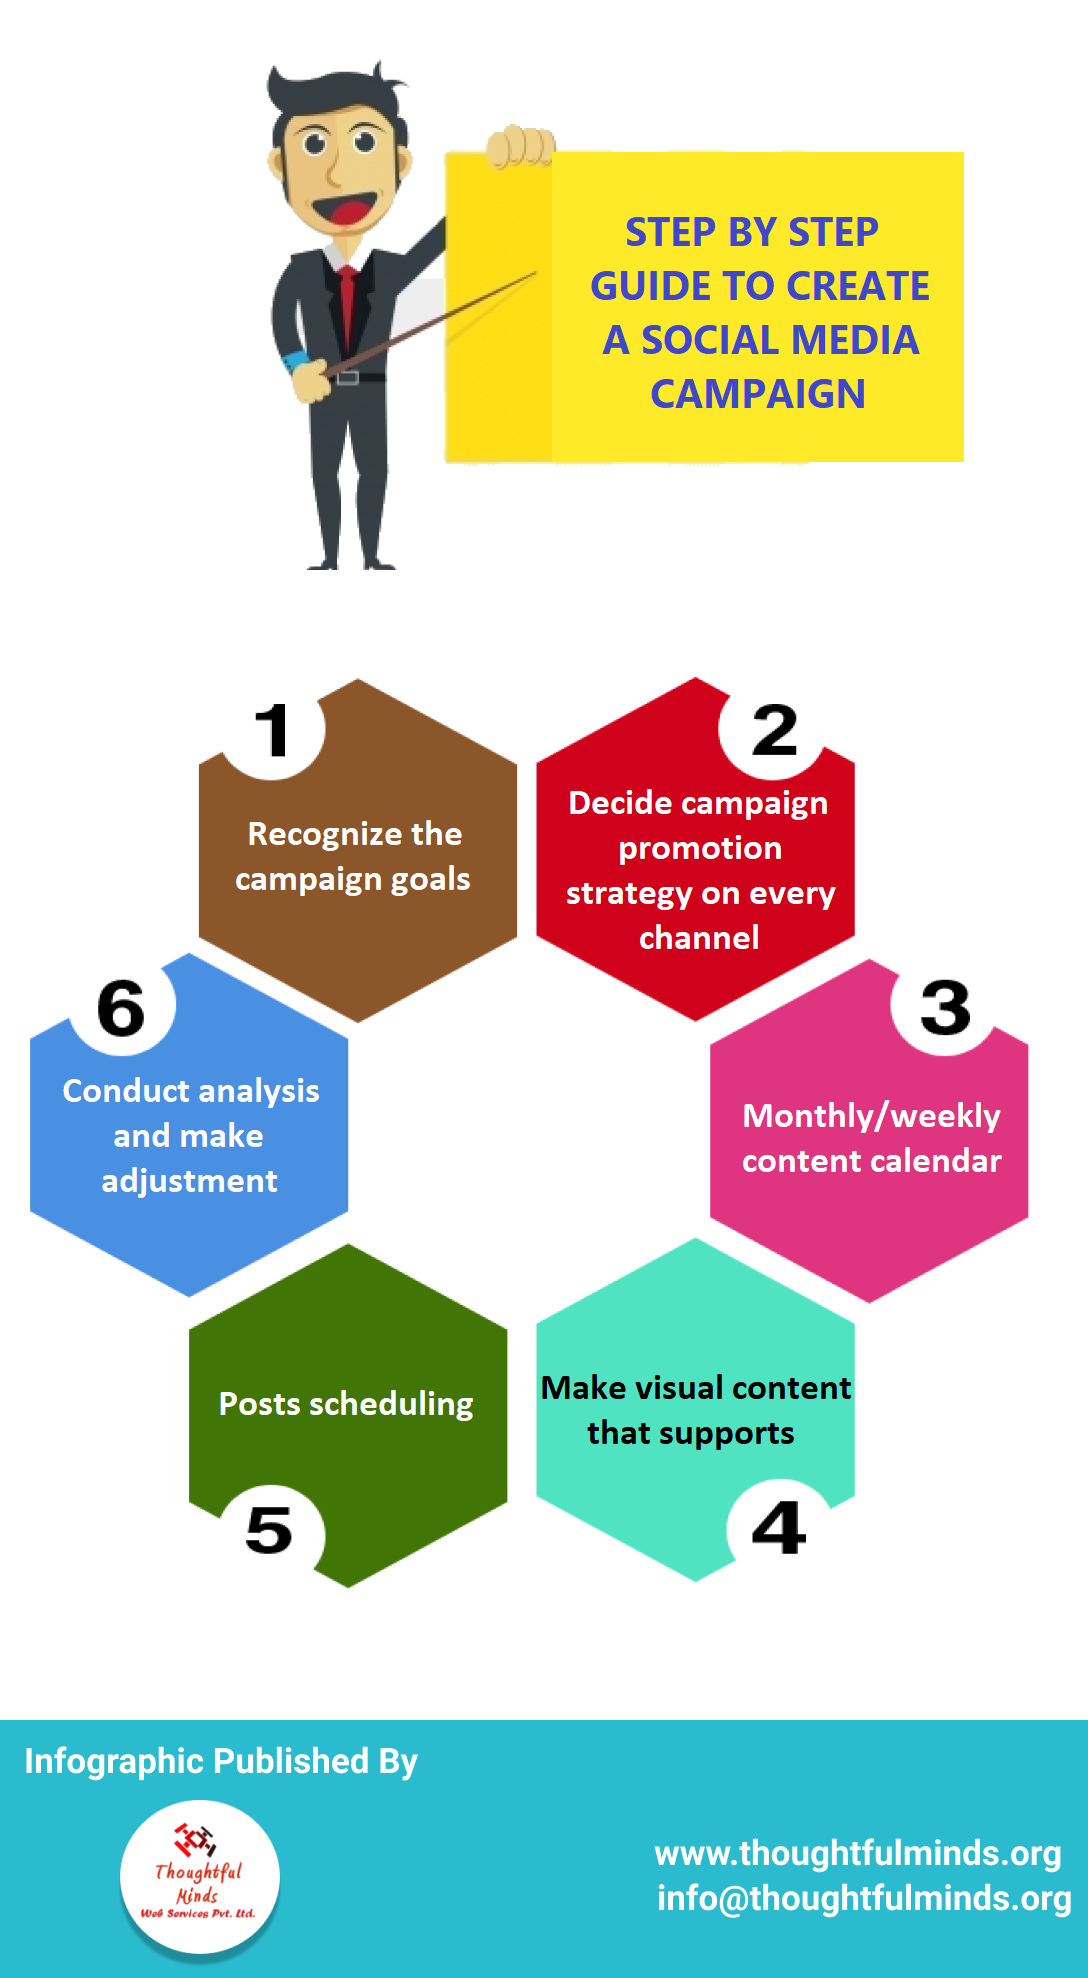 Infographic On Step By Step Guide To Create A Social Media Campaign - ThoughtfulMinds